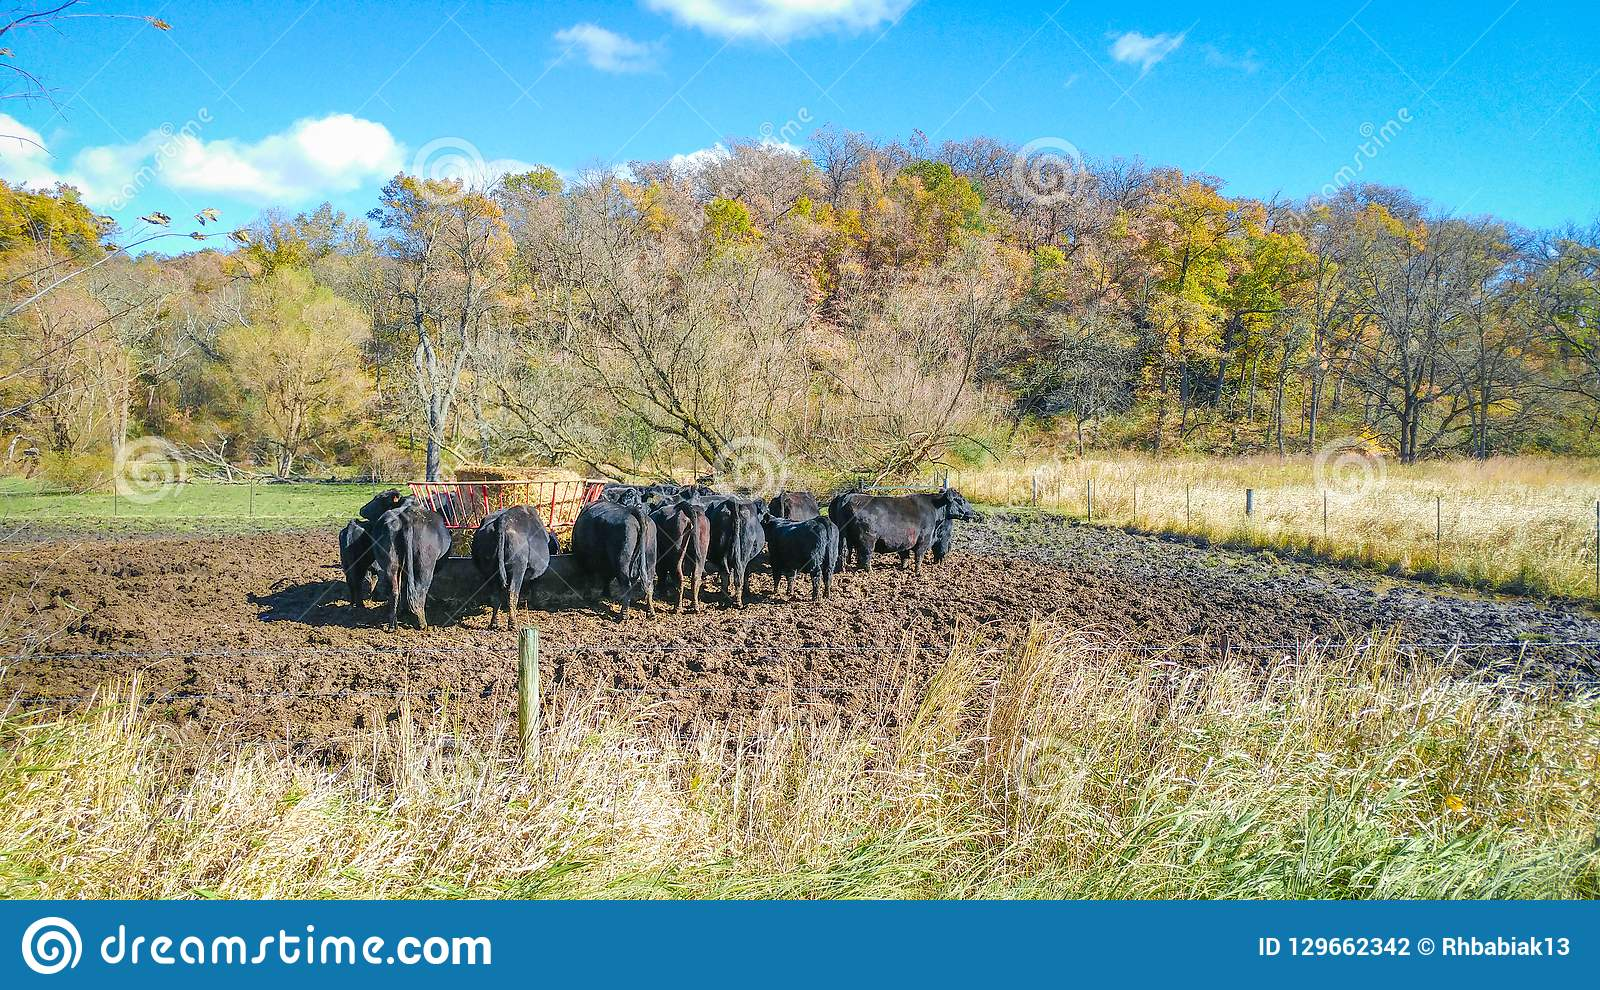 Feeding Time for Cows in Pasture